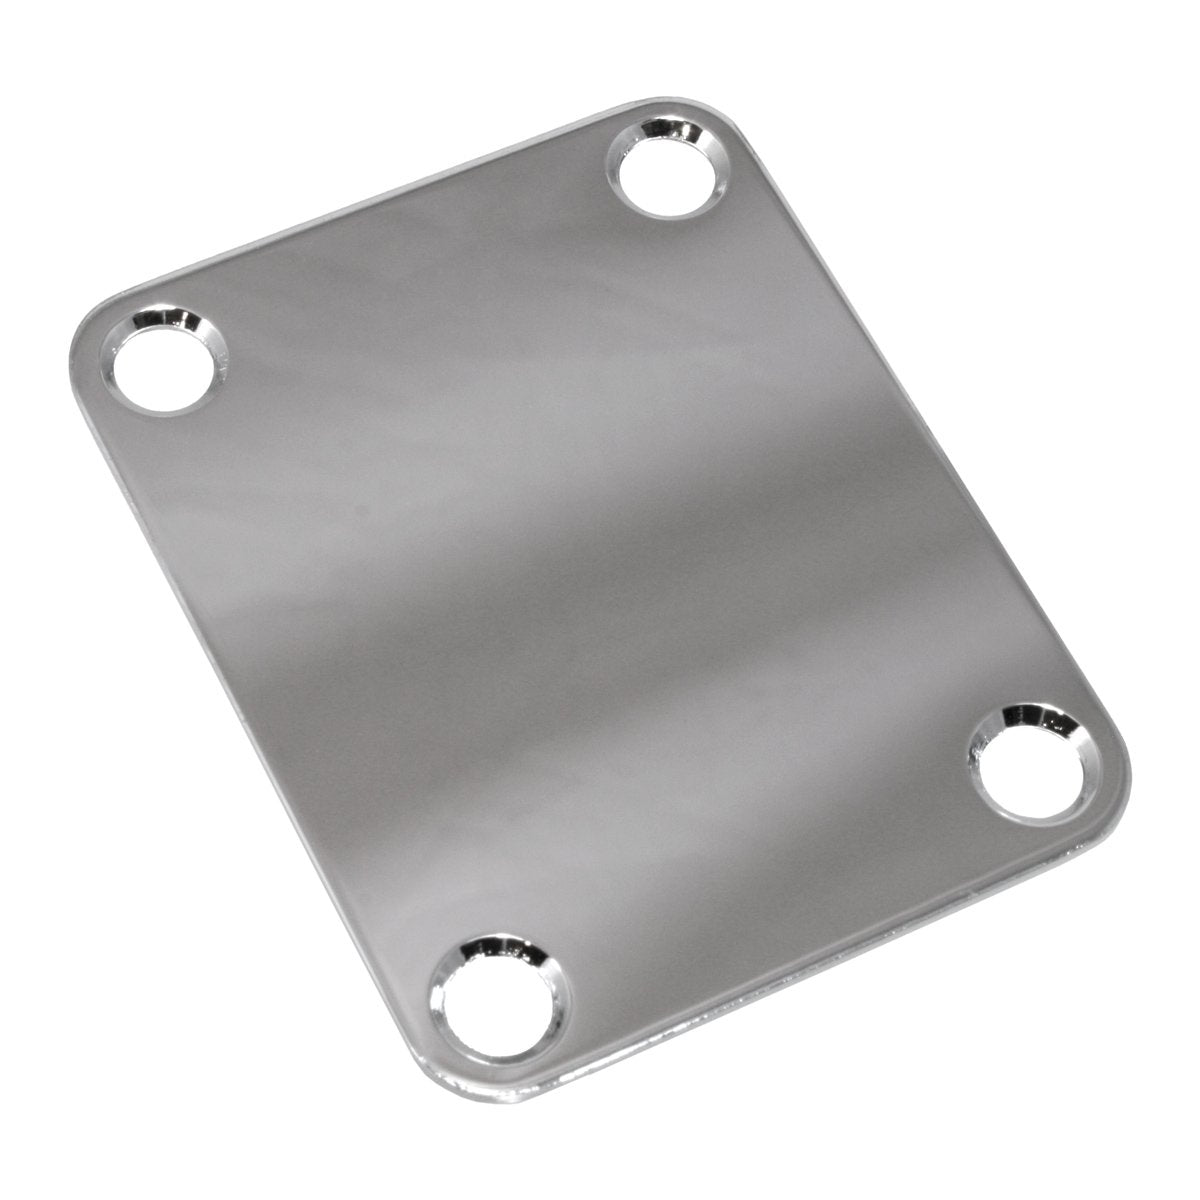 AllParts AP-0600-010 Standard Neck Plate - Chrome